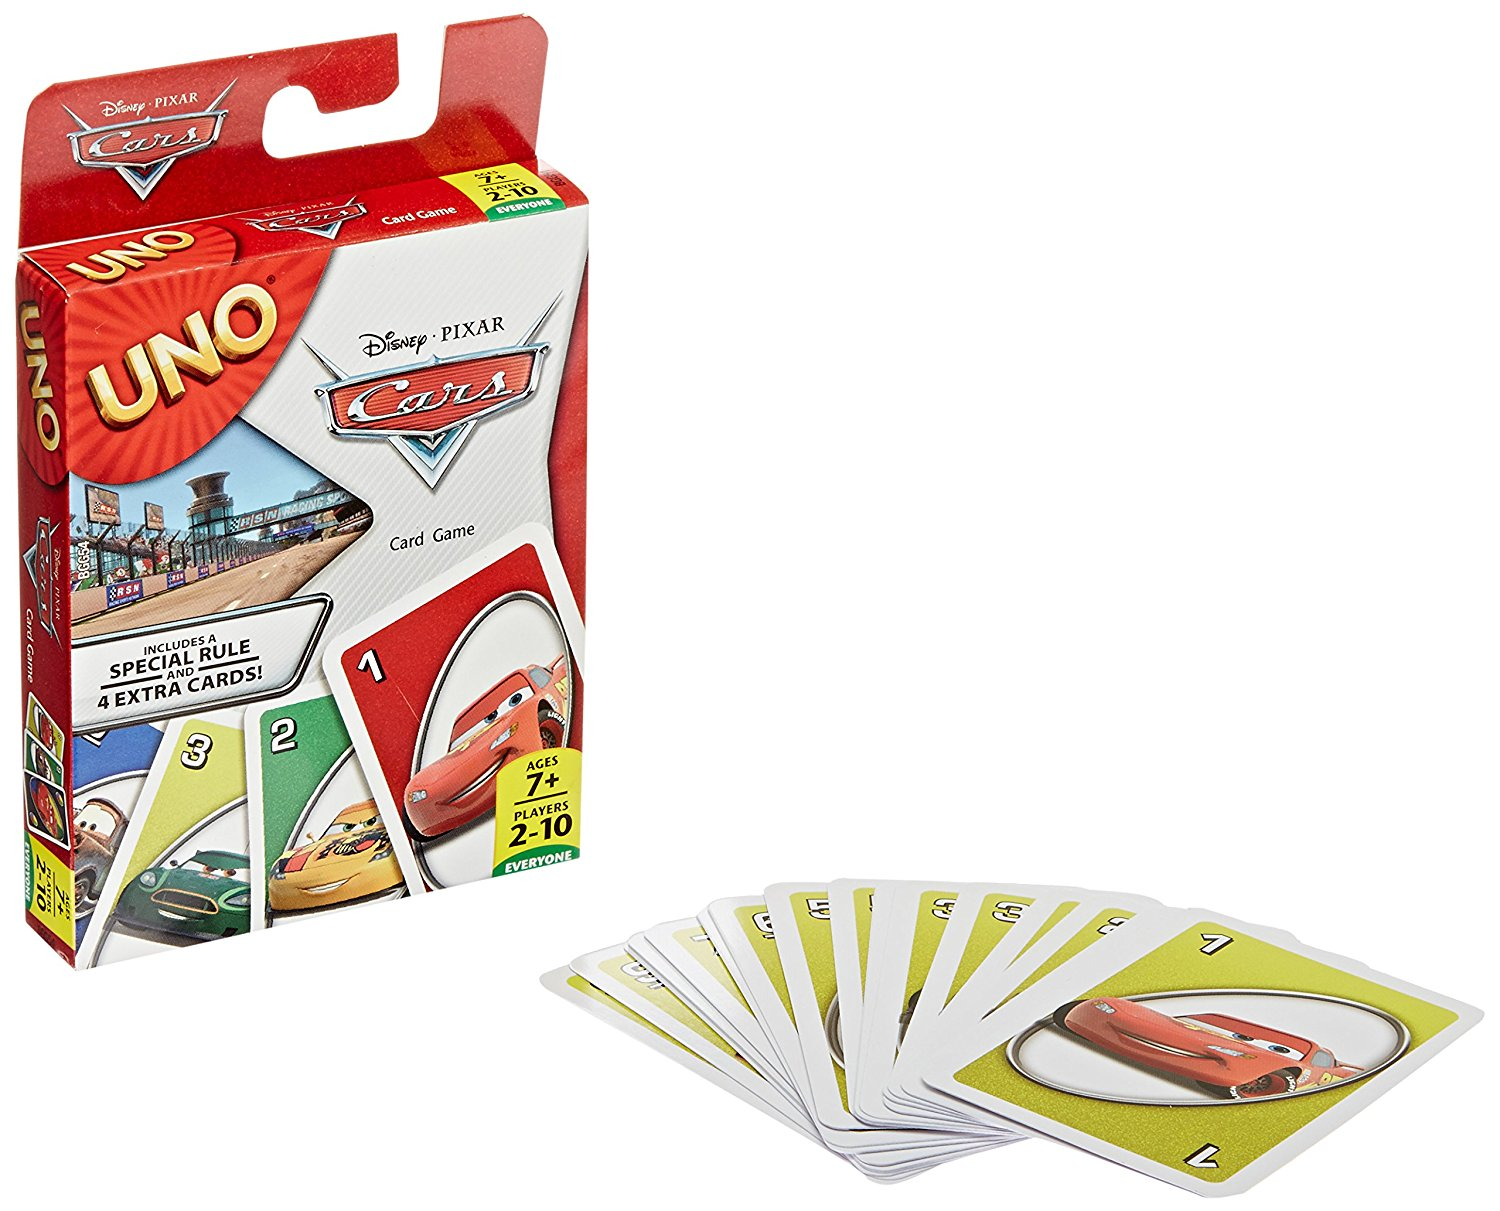 Disney Pixar Cars UNO Card Game